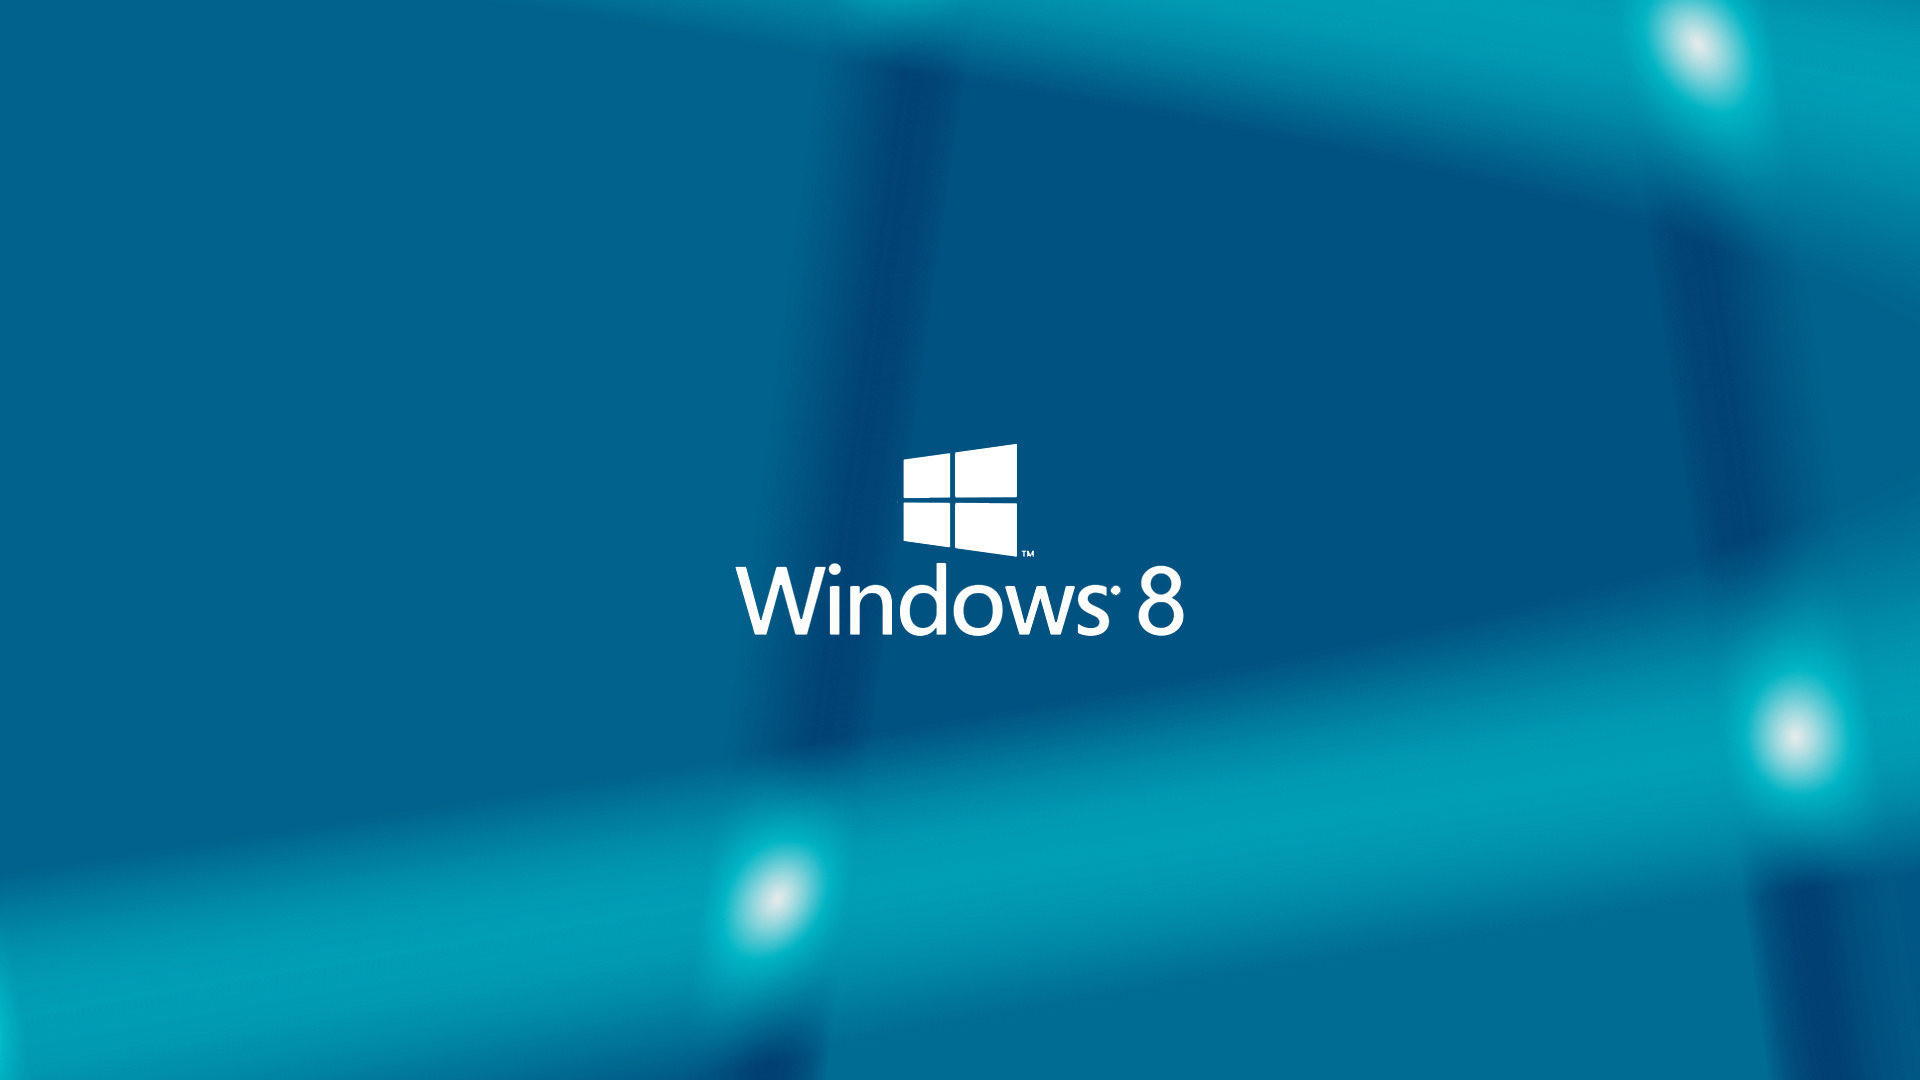 windows 8 wallpaper hd ·①